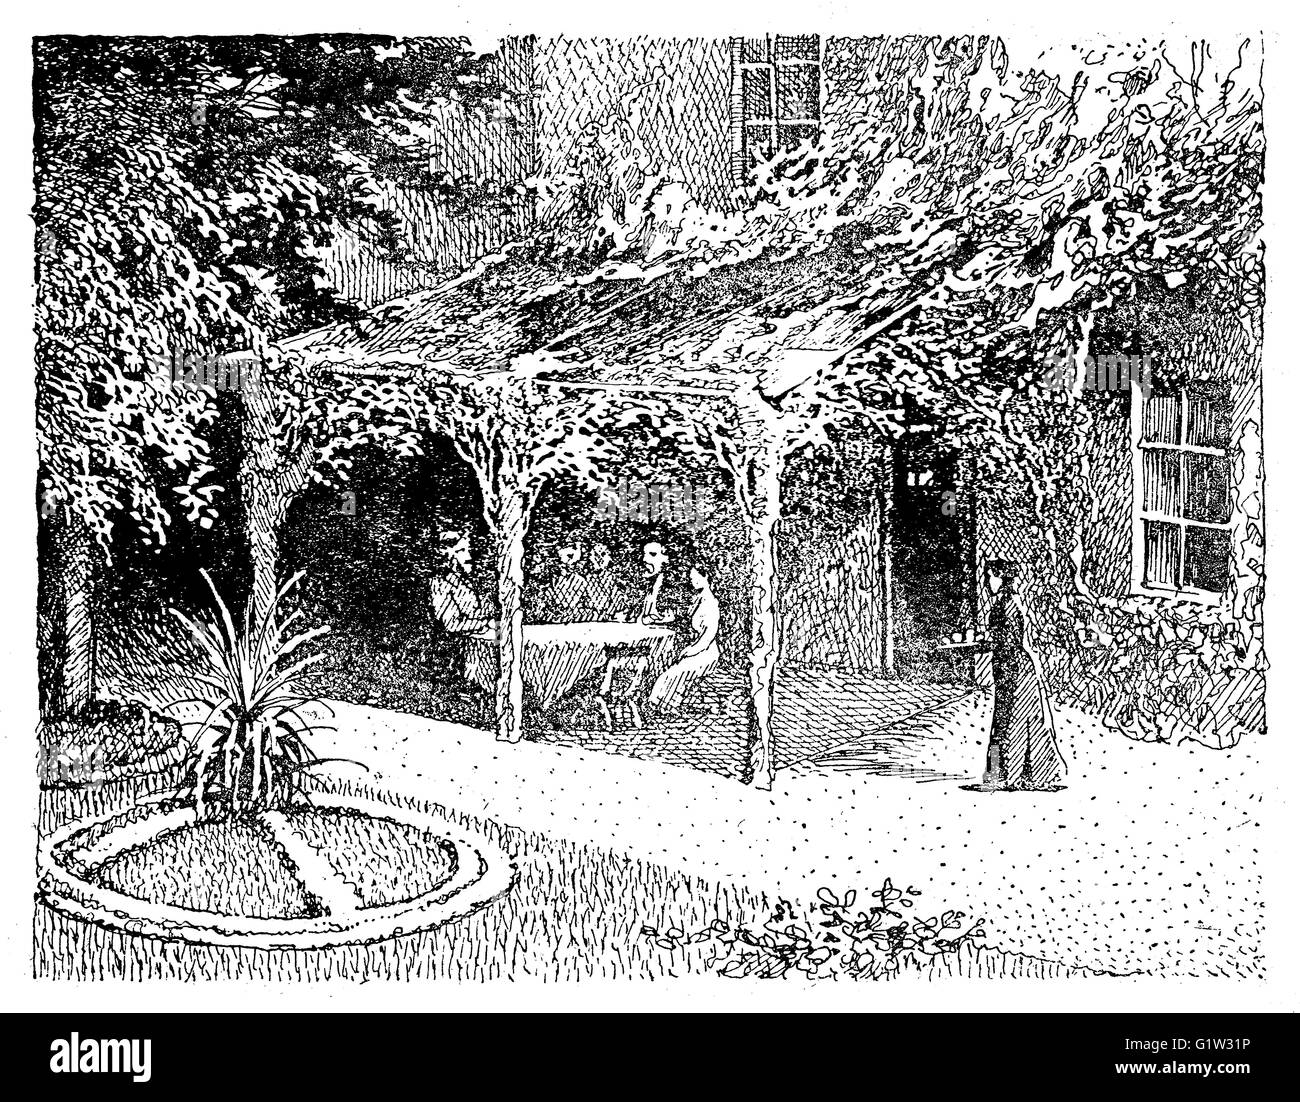 Vintage illustration: people sitting under a pergola in the shade with the view of the beautiful garden surrounding - Stock Image